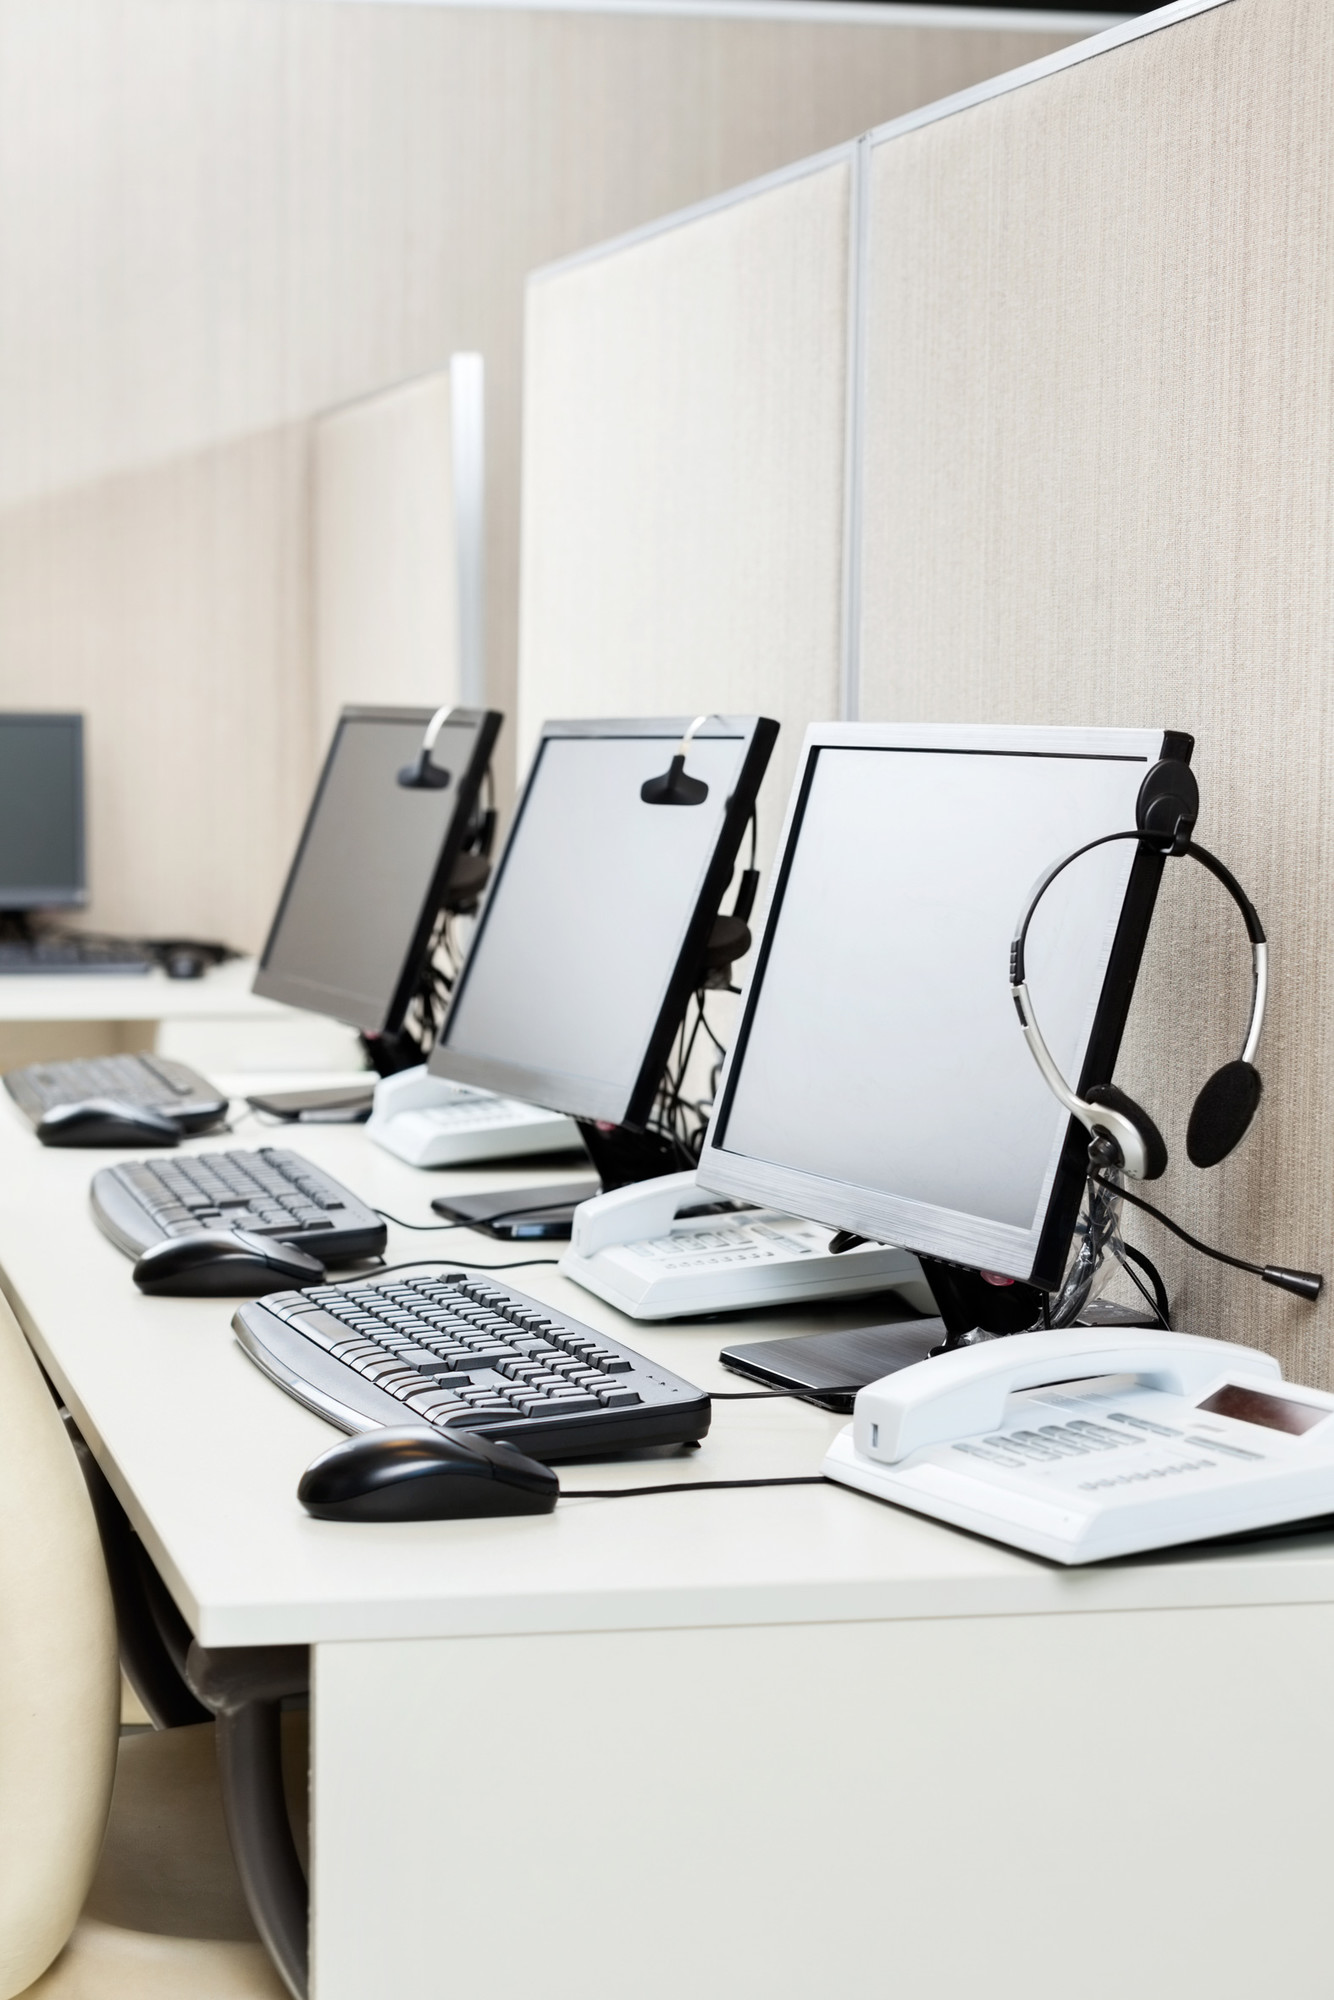 Spice up your office with cubicle hooks